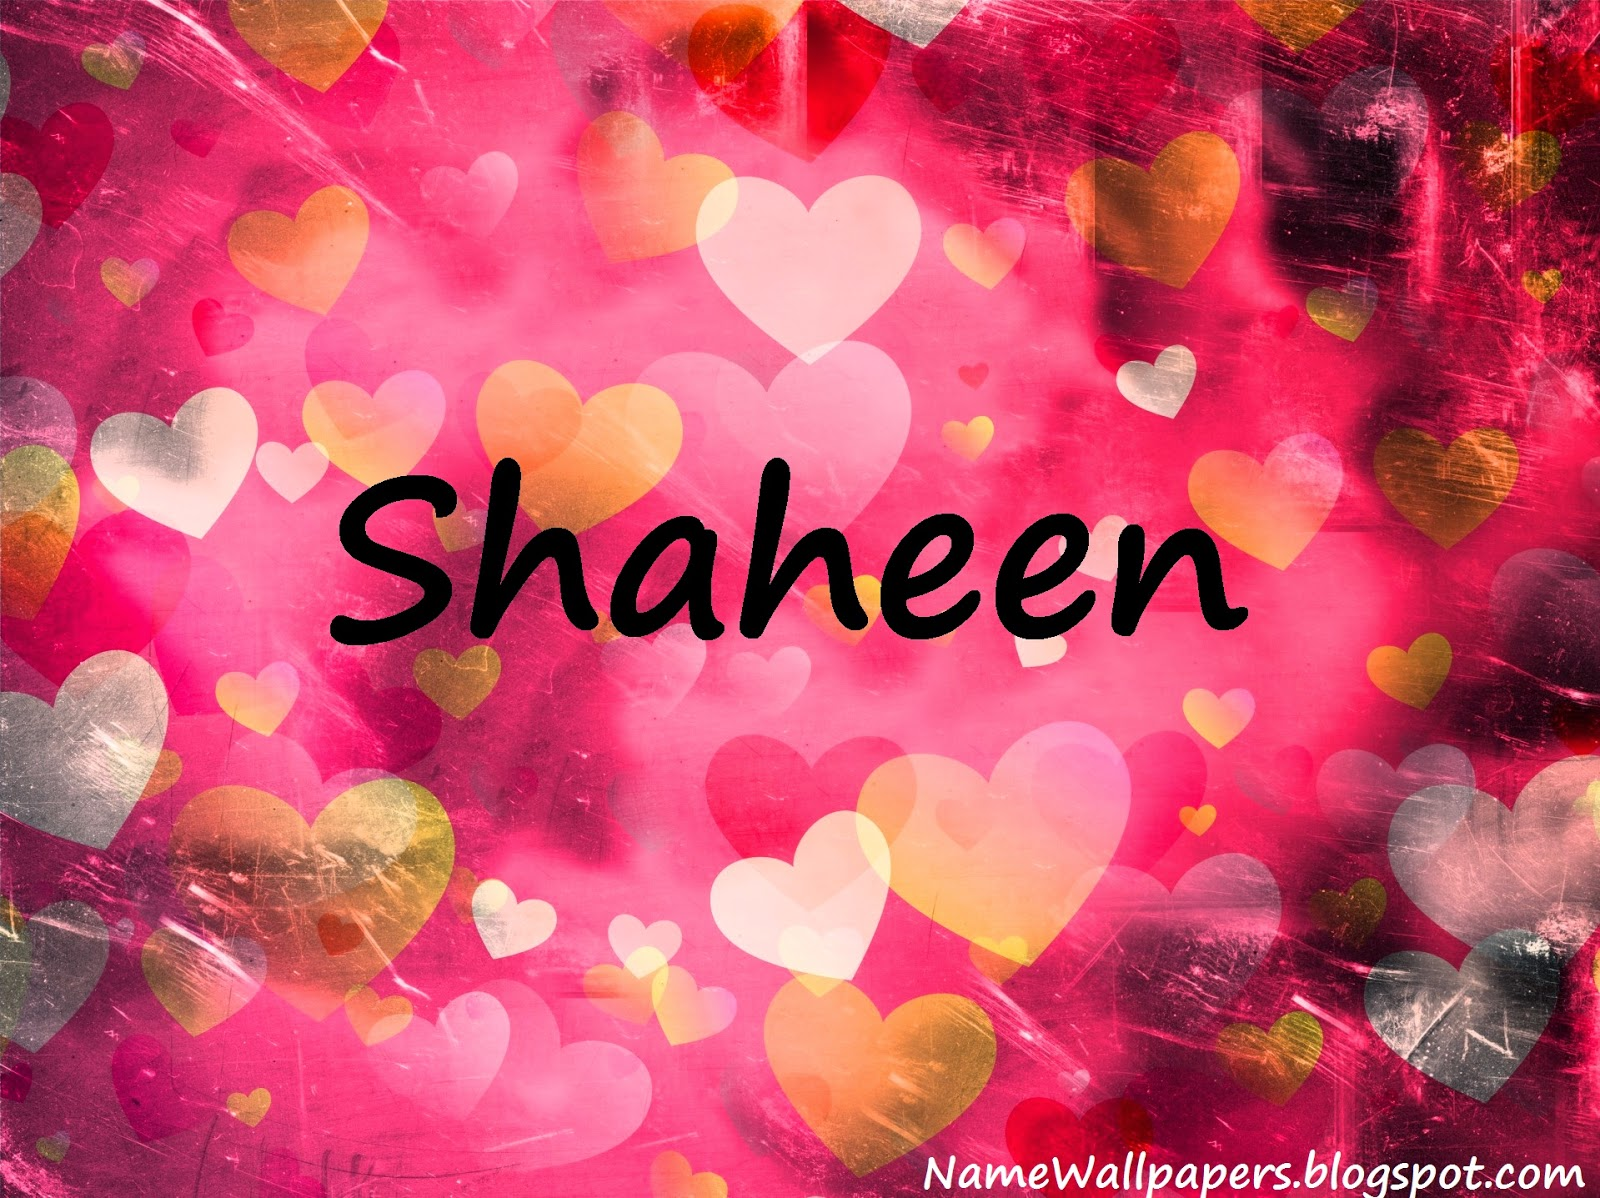 Shaheen Name Wallpapers Shaheen ~ Name Wallpaper Urdu Name Meaning ...